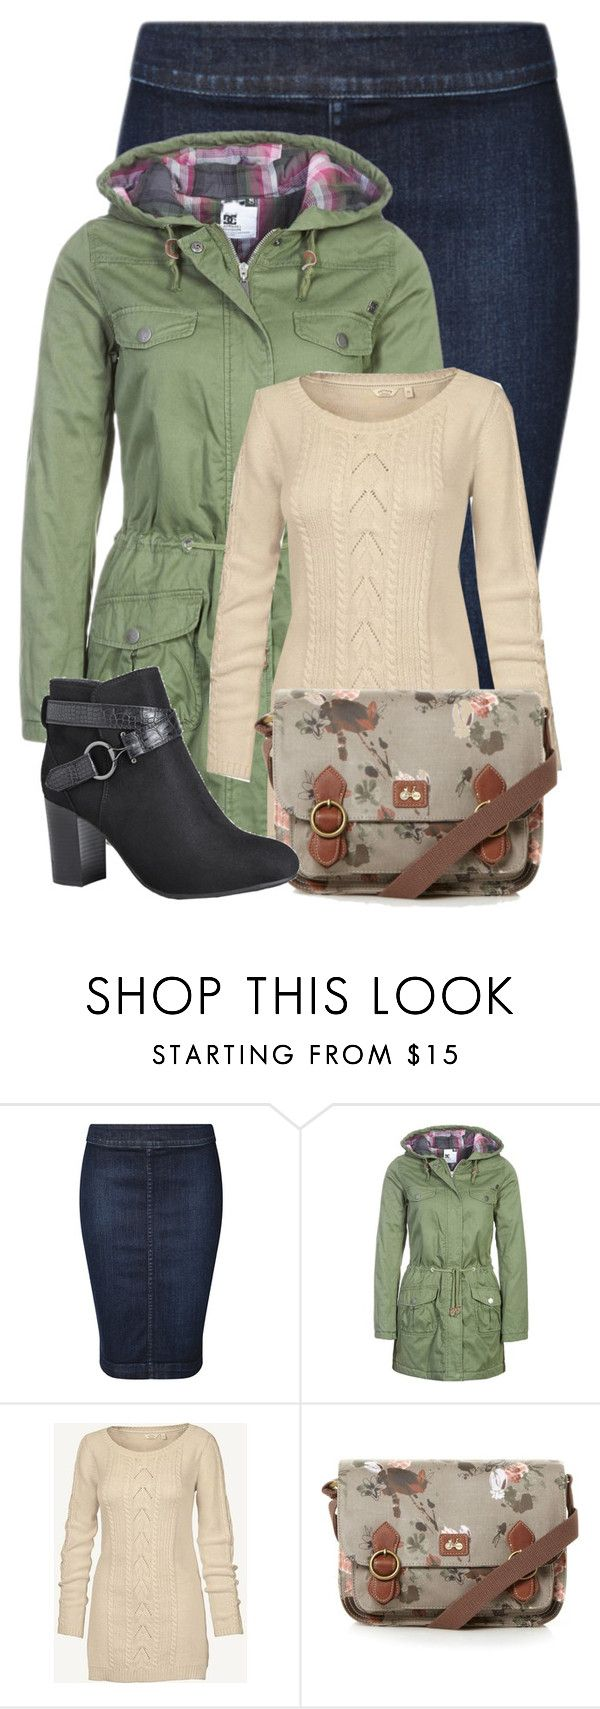 """""""Untitled #21270"""" by nanette-253 ❤ liked on Polyvore featuring Devoted, DC Shoes, Fat Face, Nica and Avenue"""